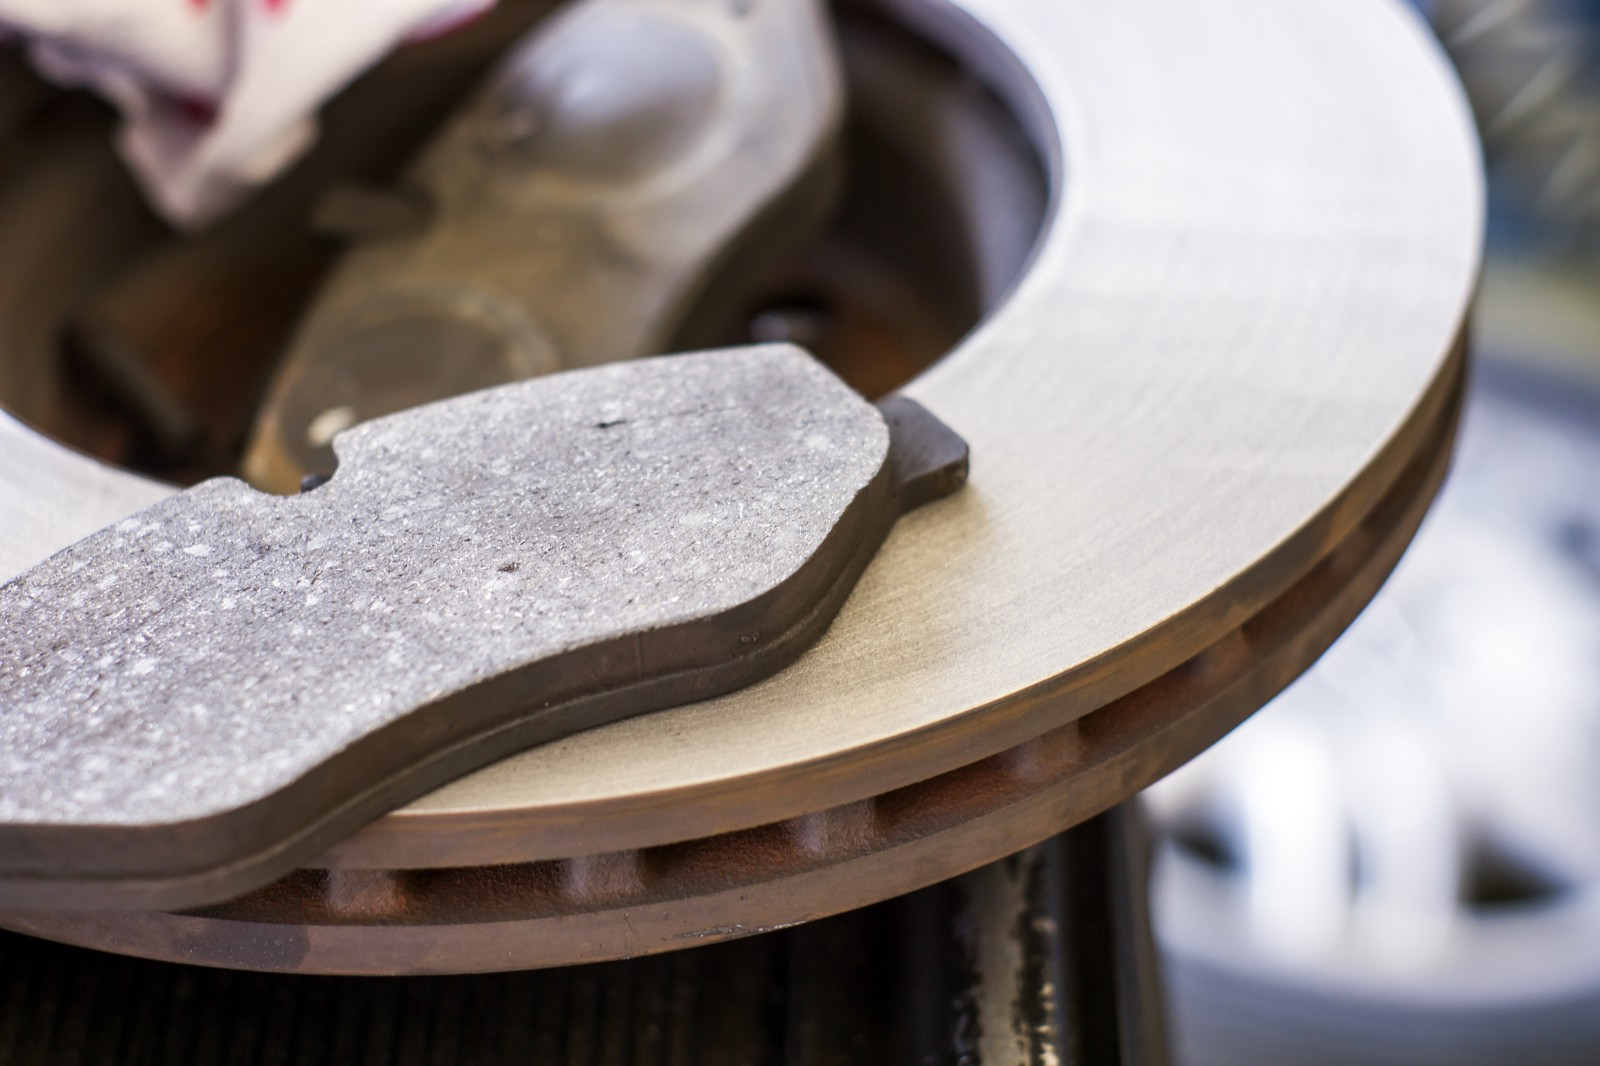 Ceramic Vs Metallic Brake Pads >> Ceramic Vs. Semi-Metallic Brake Pads – Hogan & Sons Tire ...